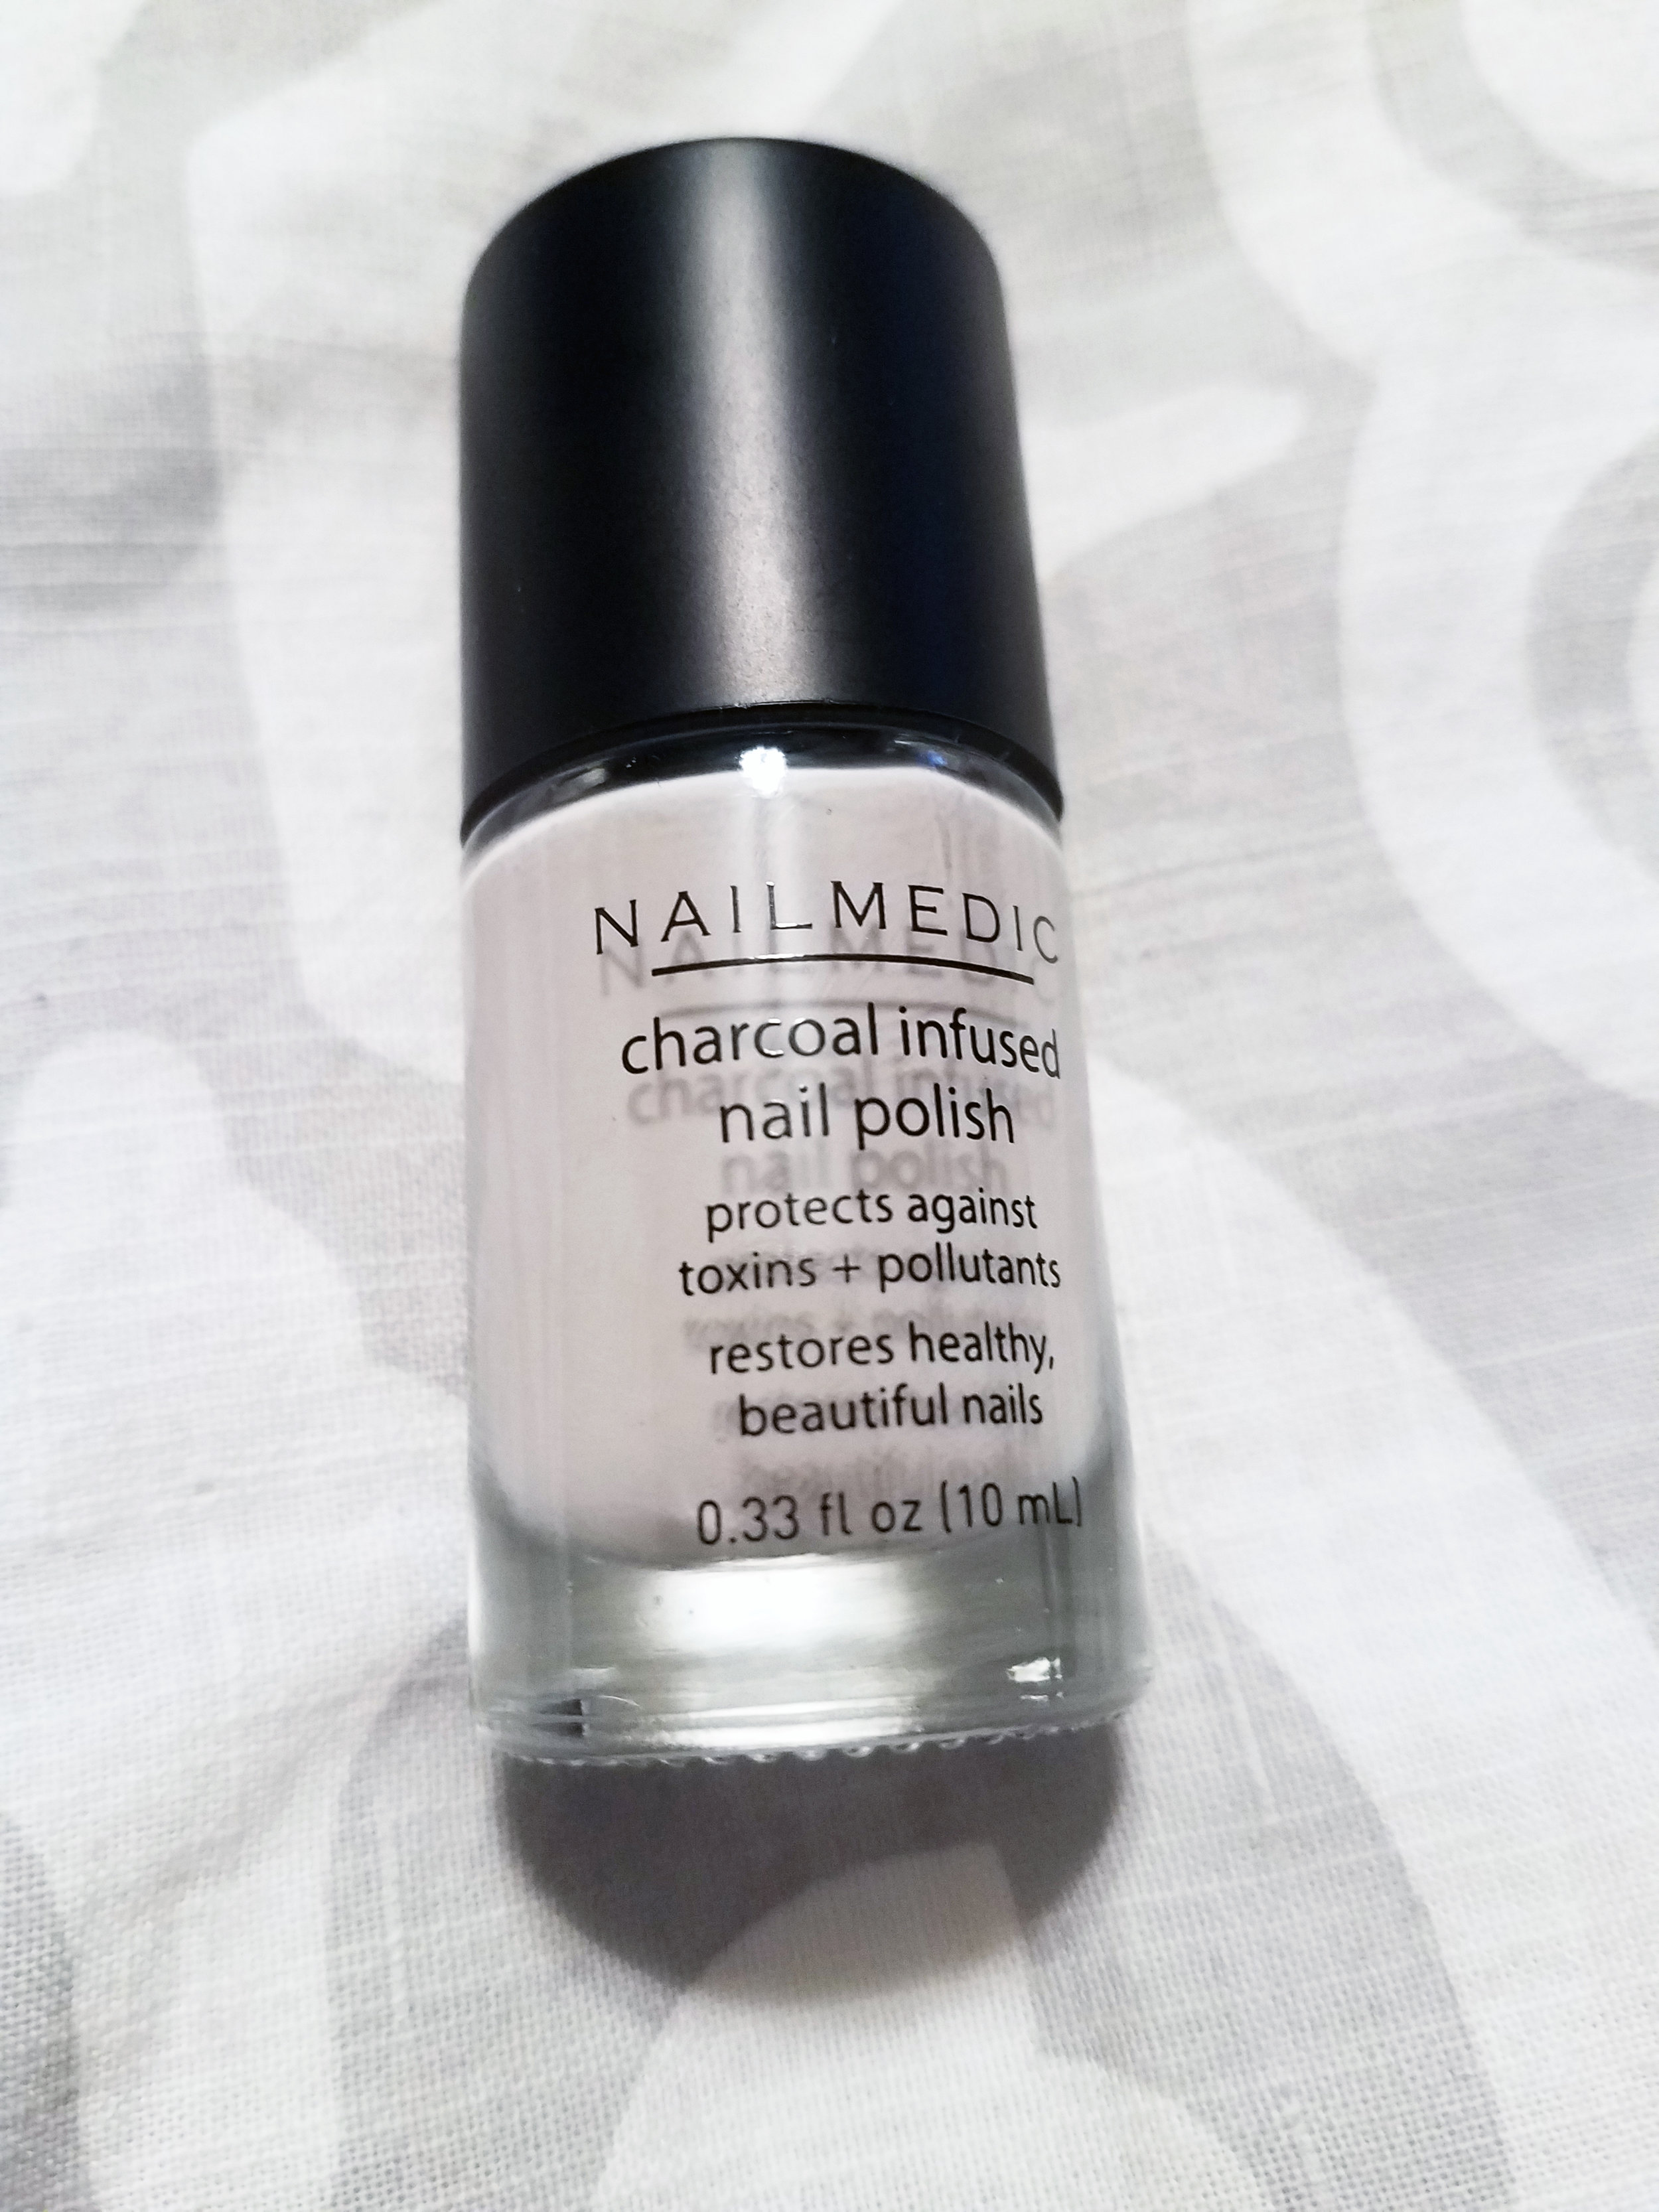 Nail Medic Charcoal Infused Nail Polish in Lava or Volcanic Ash